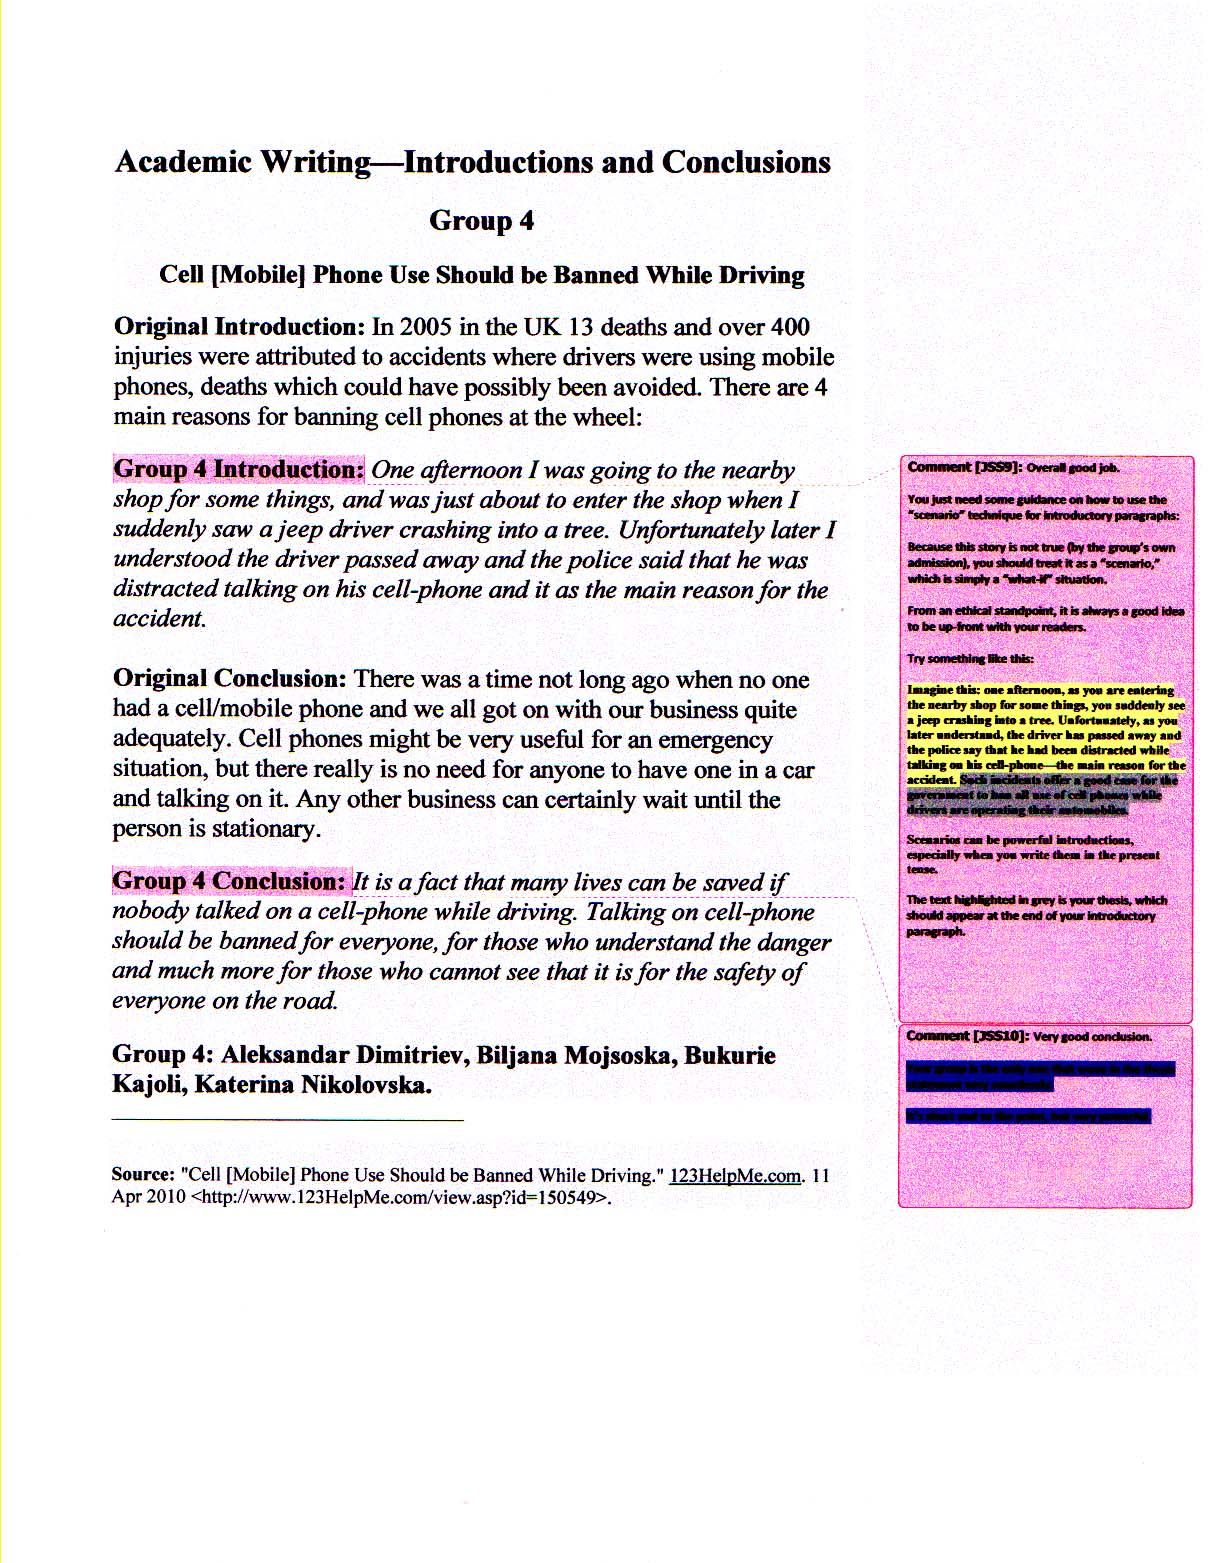 006 Persuasive Essay Conclusion Impressive Template Paragraph Examples Example Full